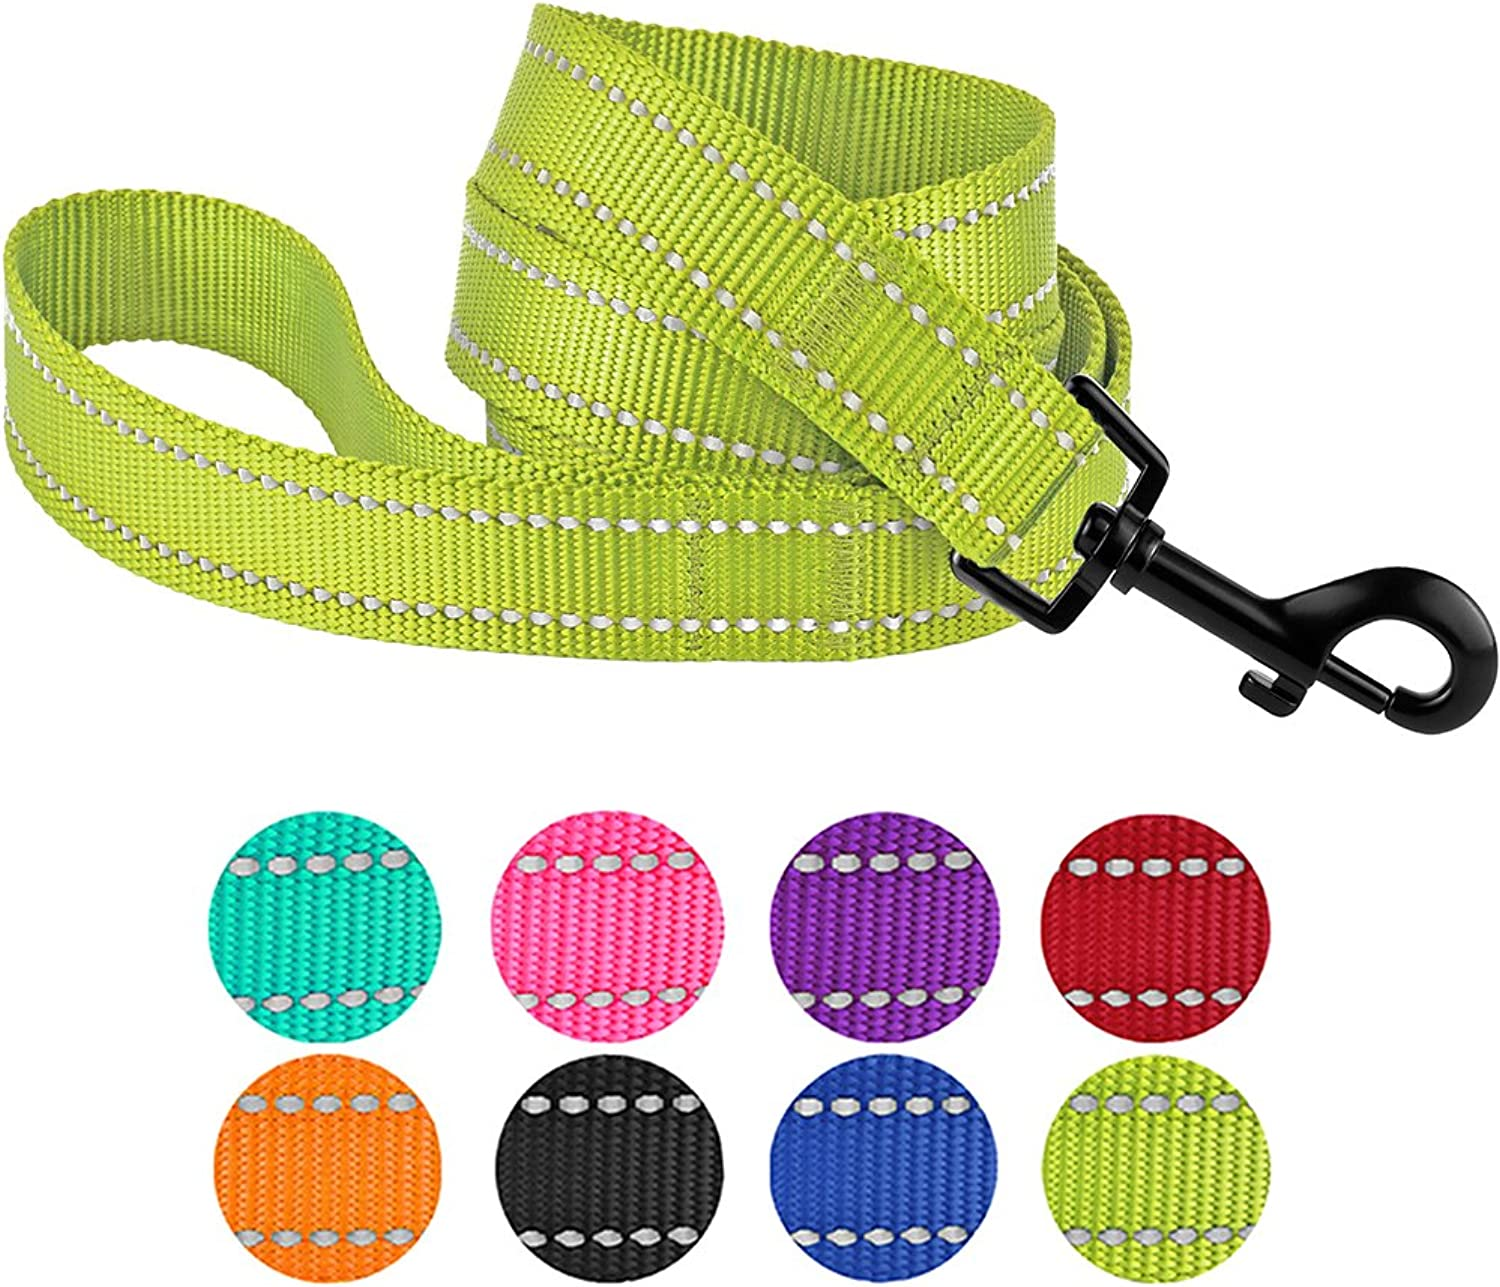 CollarDirect Nylon Dog Leash 5ft for Daily Outdoor Walking Running Training Heavy Duty Reflective Pet Leashes for Large, Medium & Small Dogs (L, Lime Green)